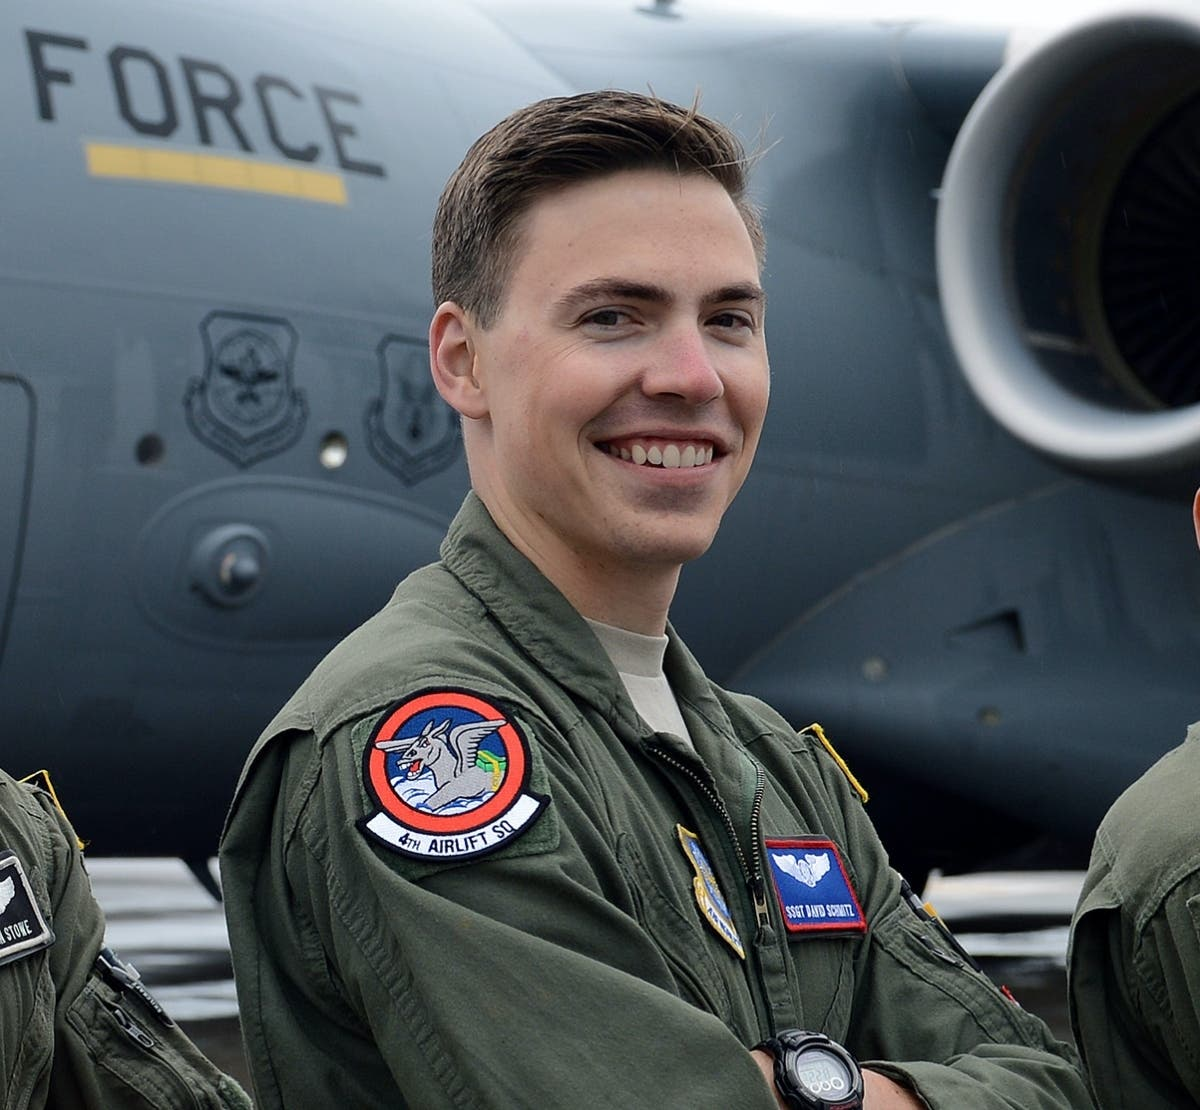 Temecula Air Force Pilot Killed During Training Mission